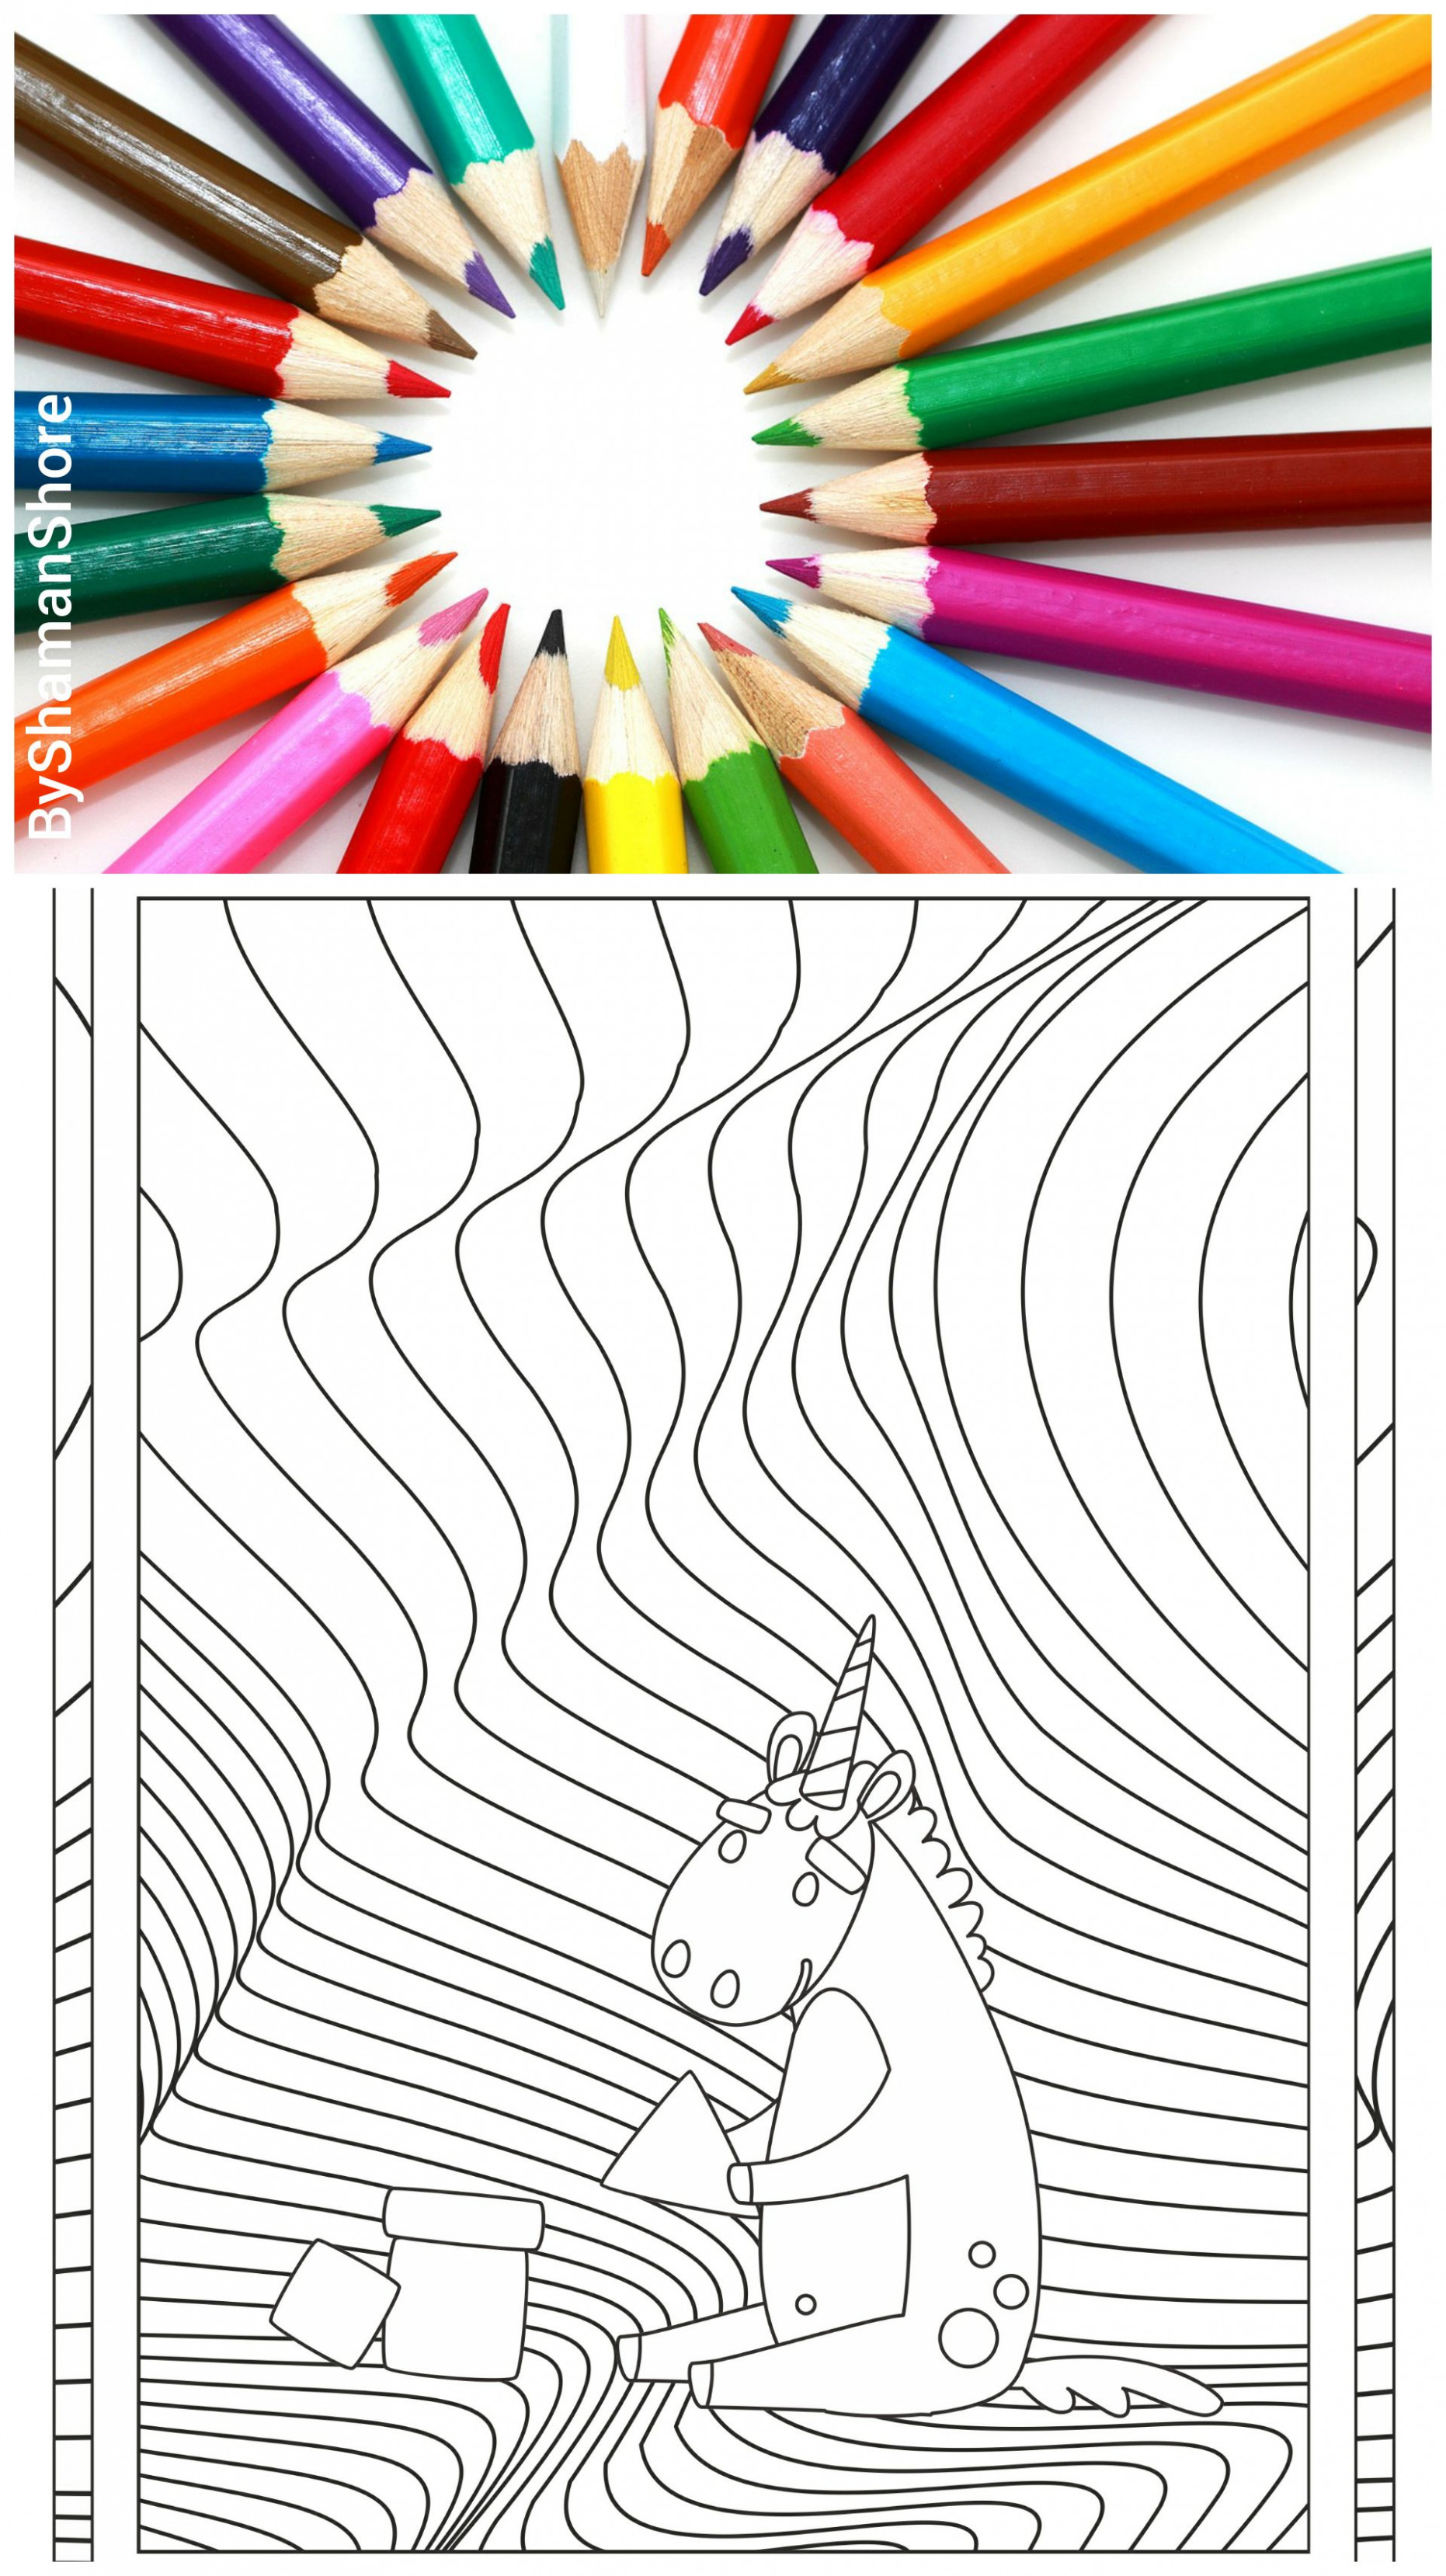 Digital Adult Coloring Book Pdf, 12 Unicorn Adult Coloring Pages ...